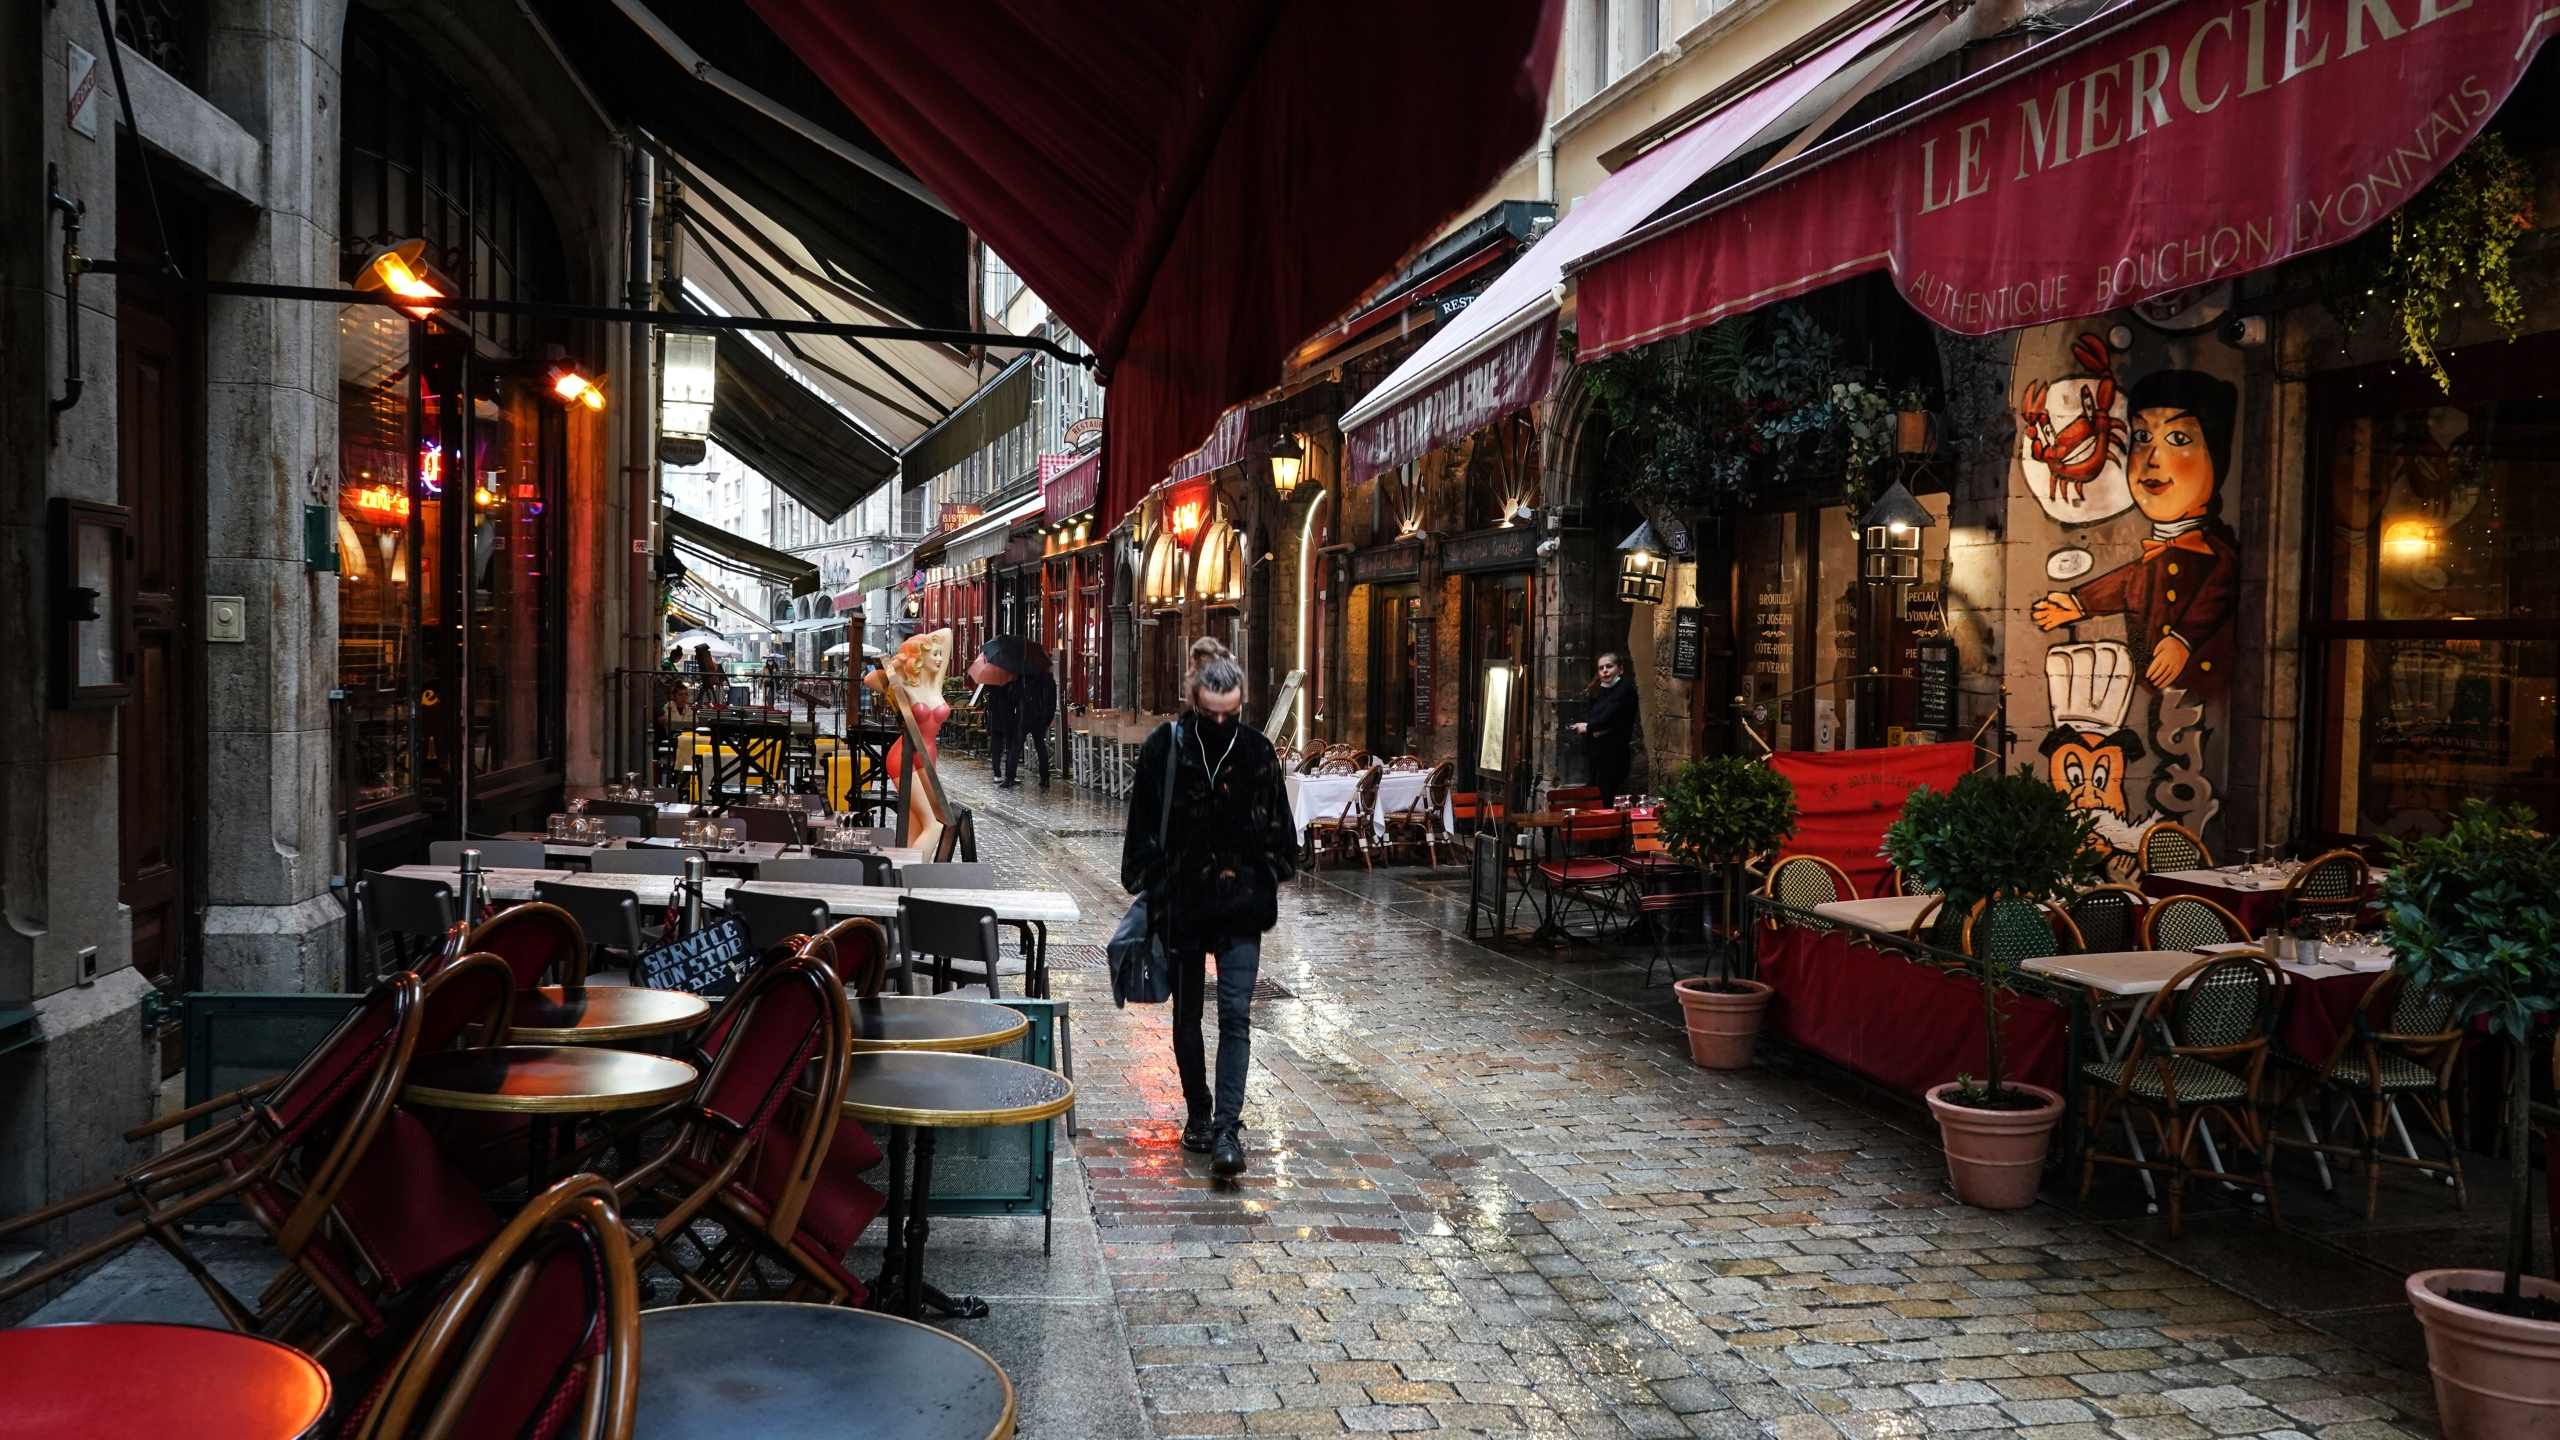 In this Friday, Oct. 2, 2020 file photo, a woman walks by empty restaurants in the center of Lyon, central France. (AP Photo/Laurent Cipriani, File)